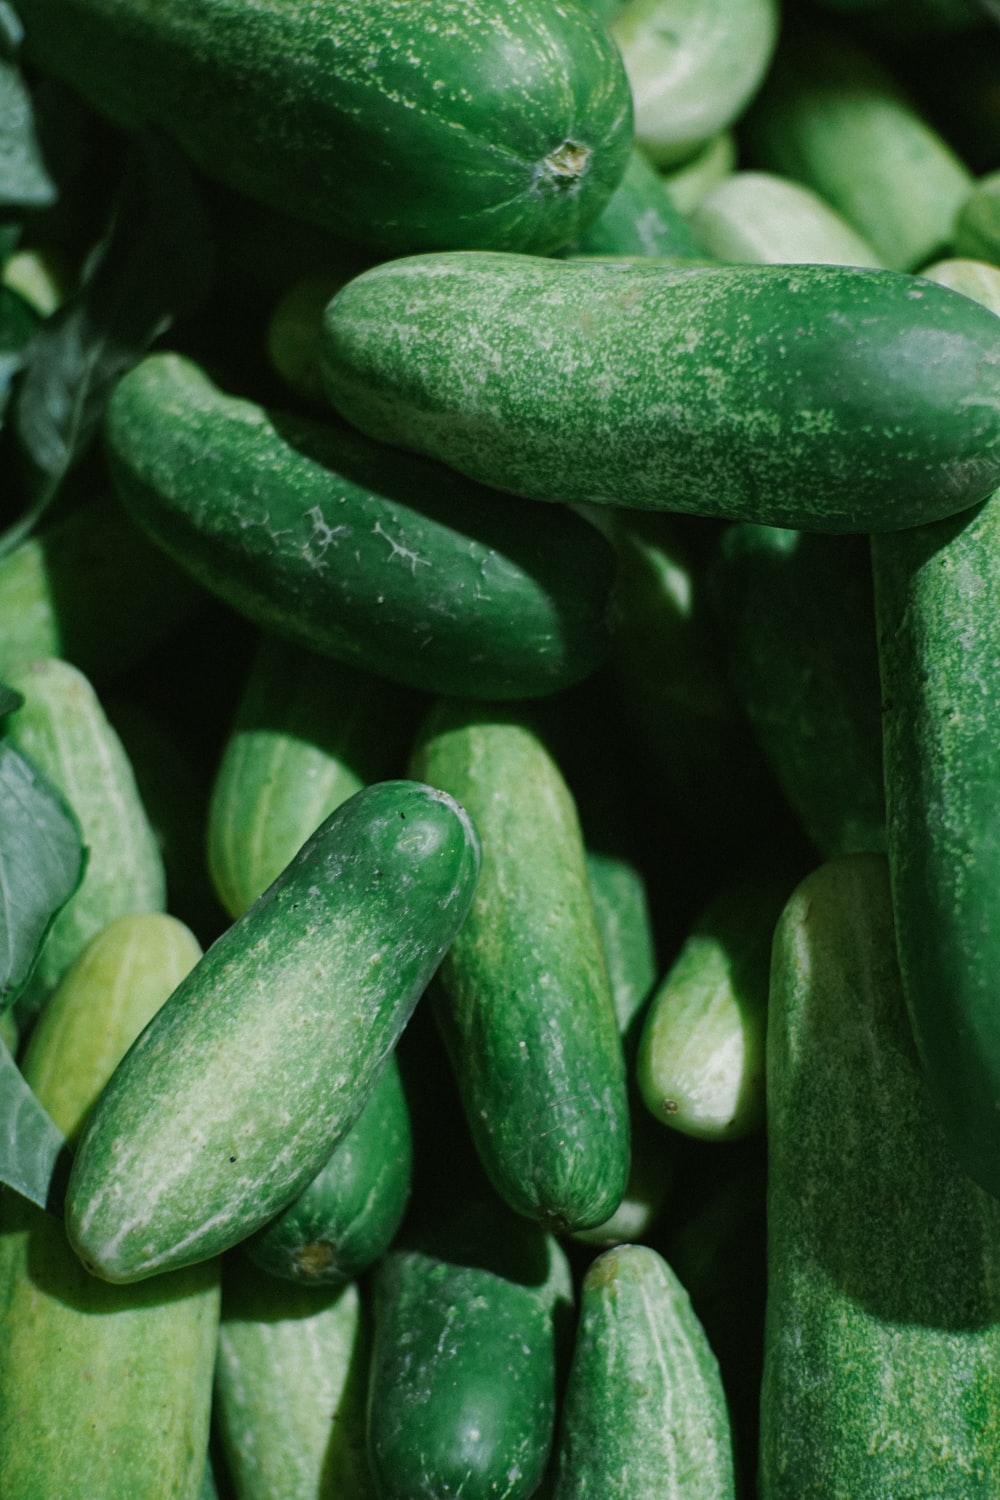 close up photo of green vegetable